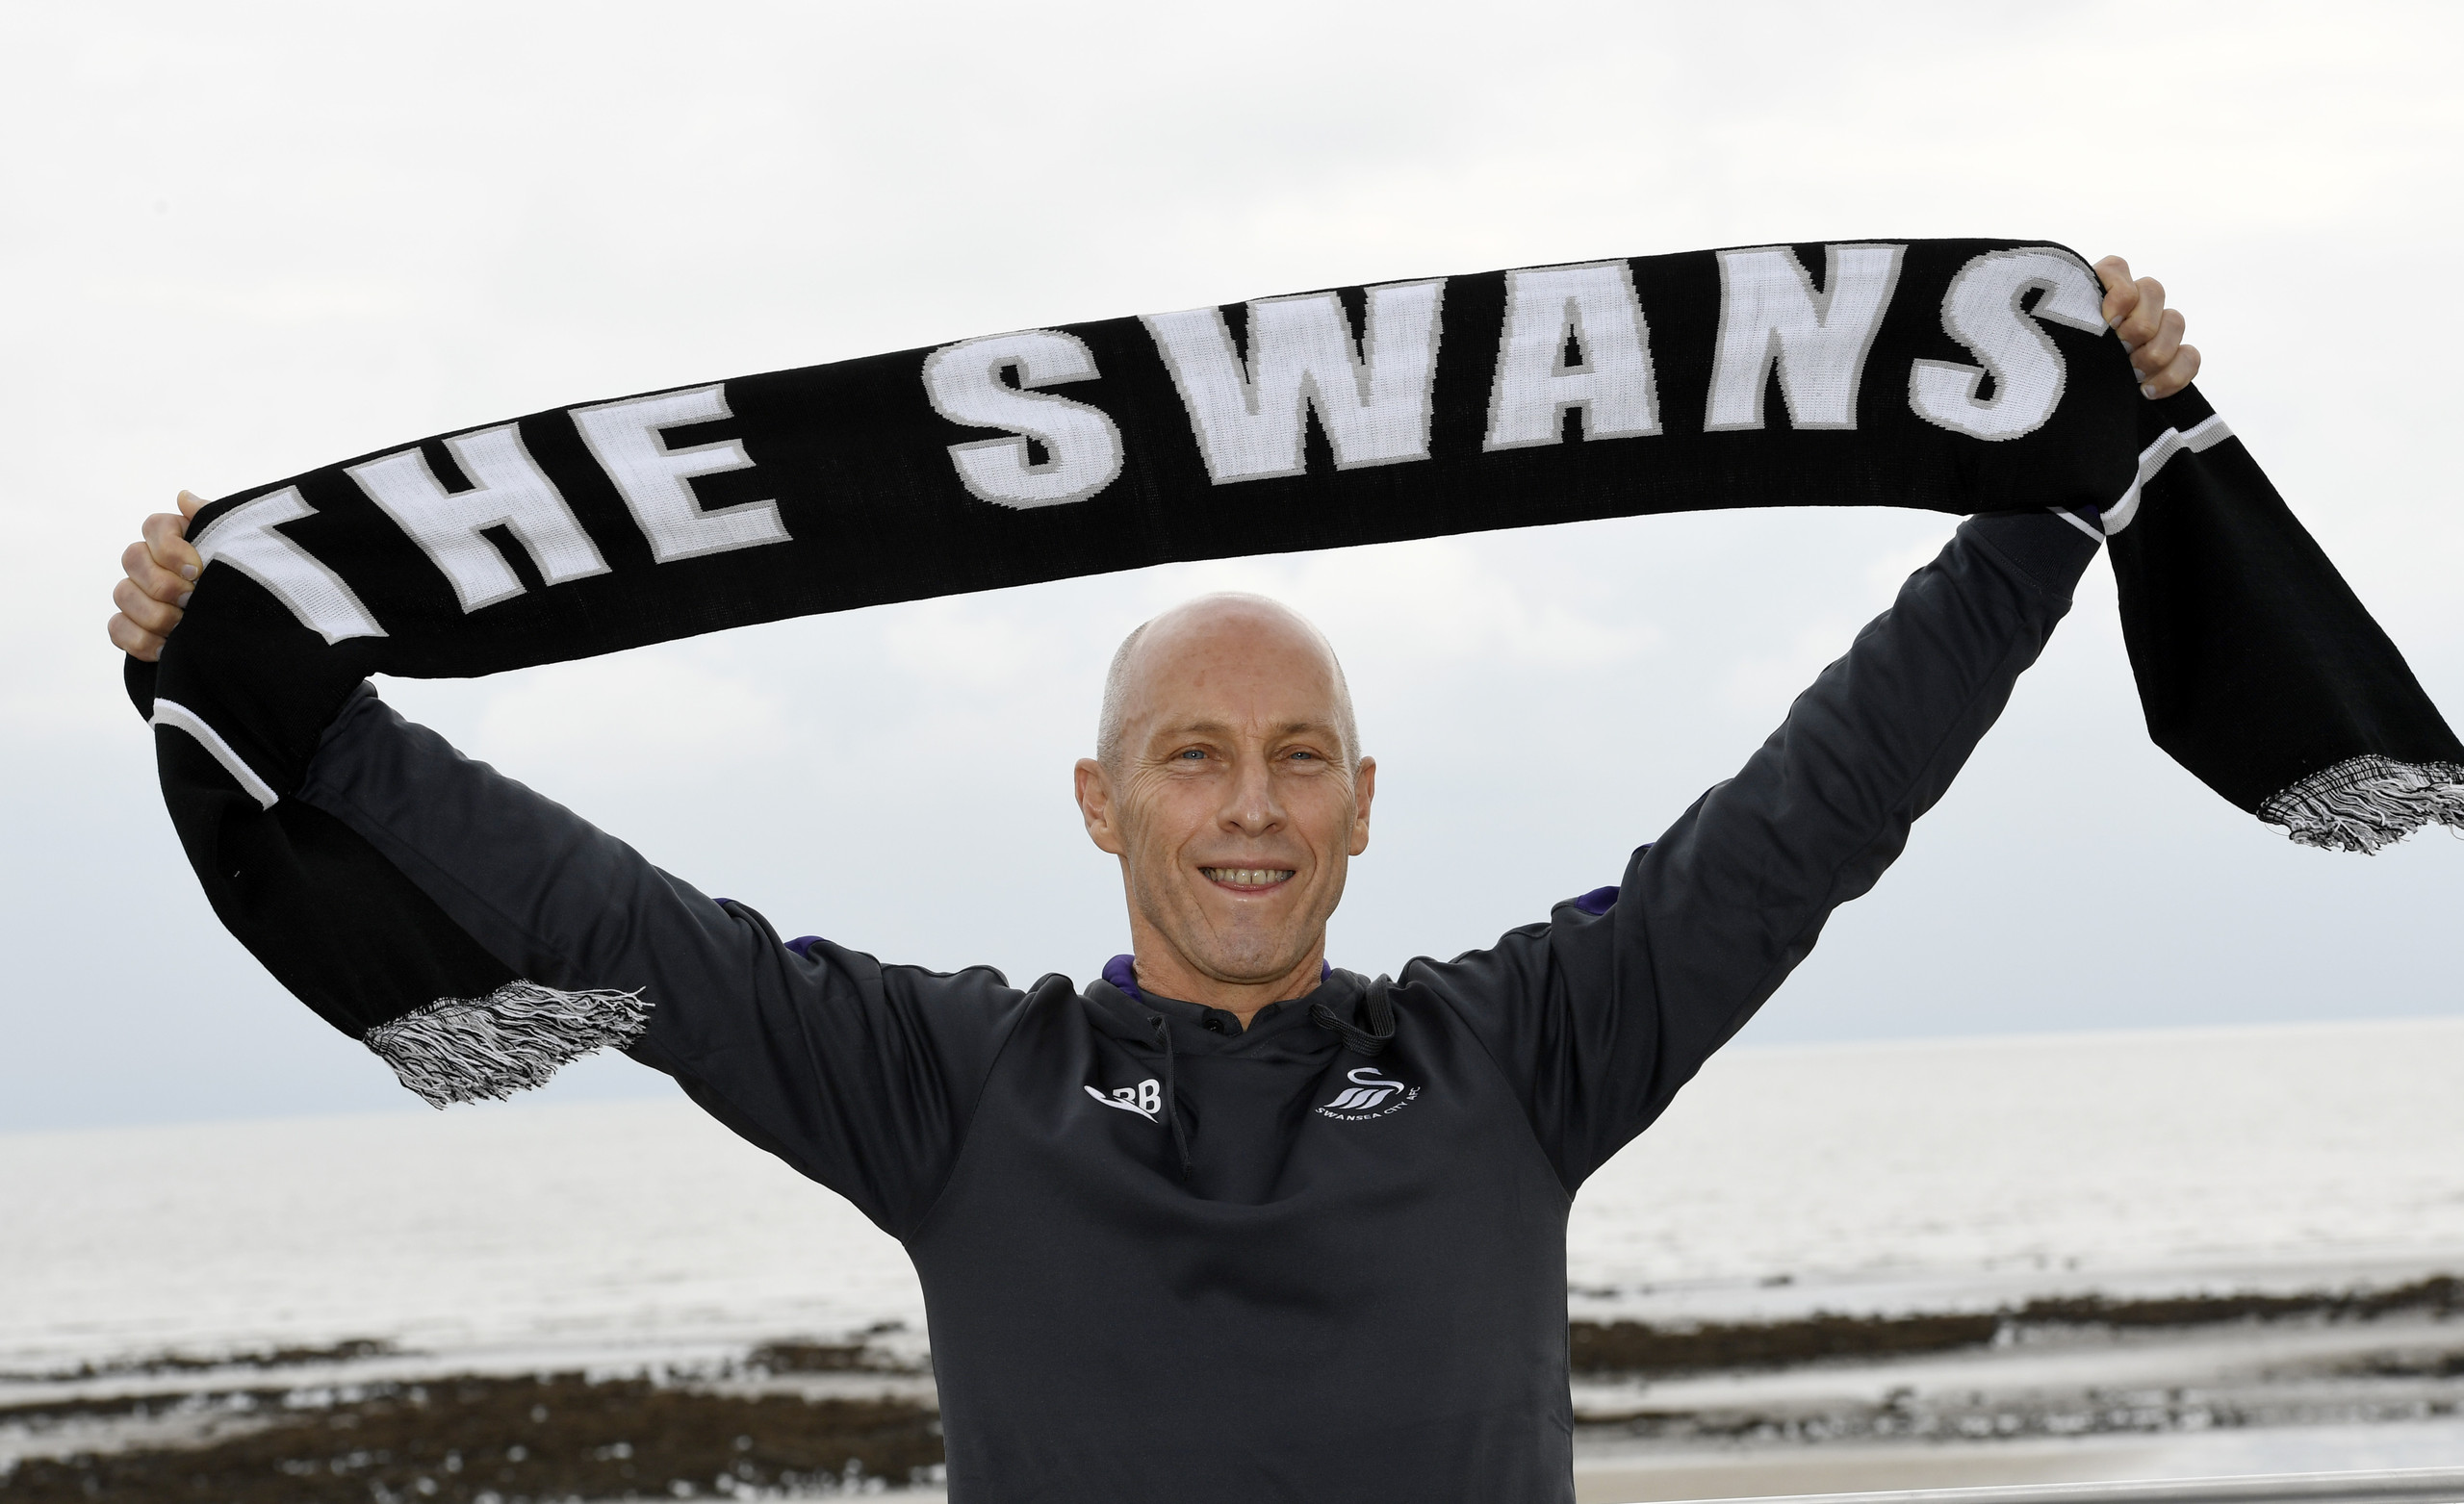 Swansea City - Bob Bradley Press Conference